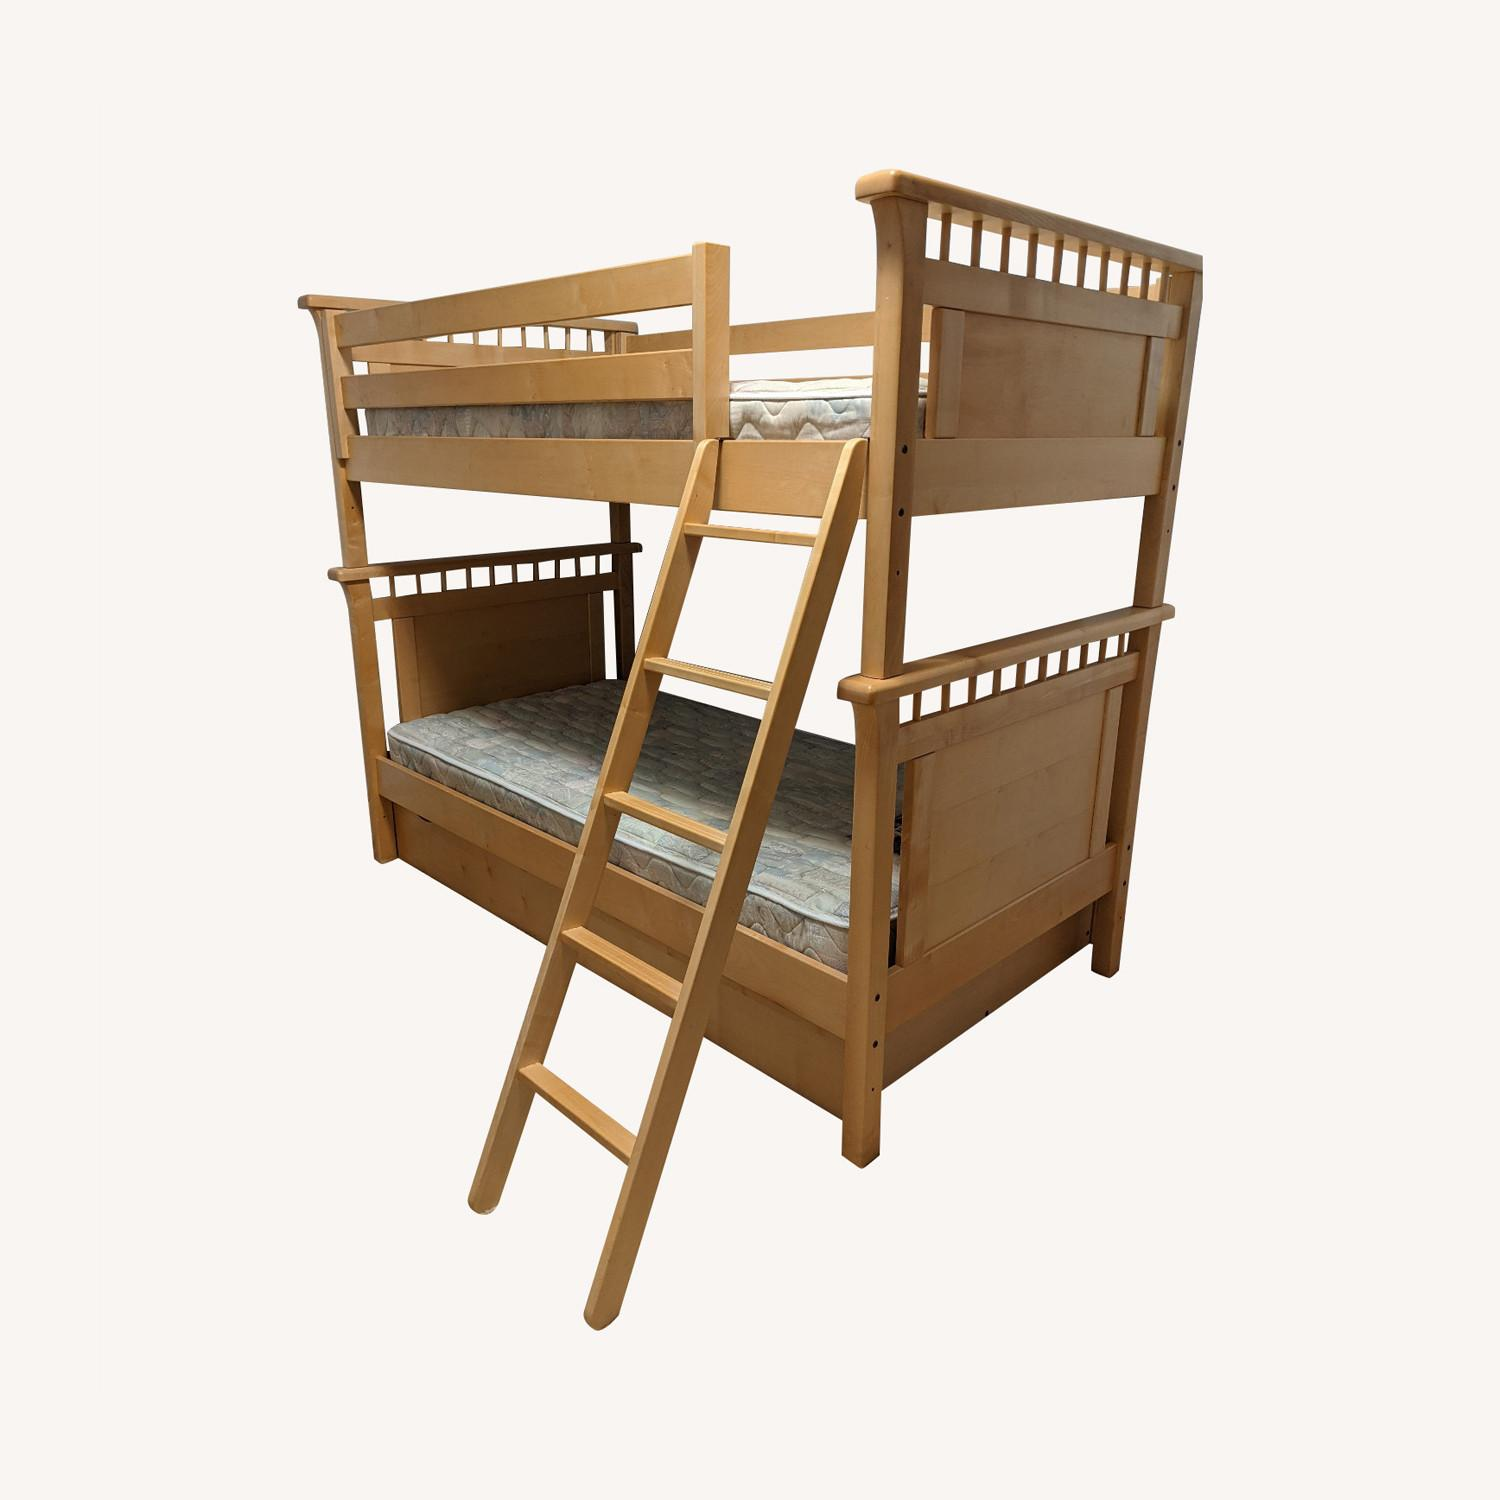 Solid Wood Bunk Beds w/ Under Bed Storage Drawers - image-0